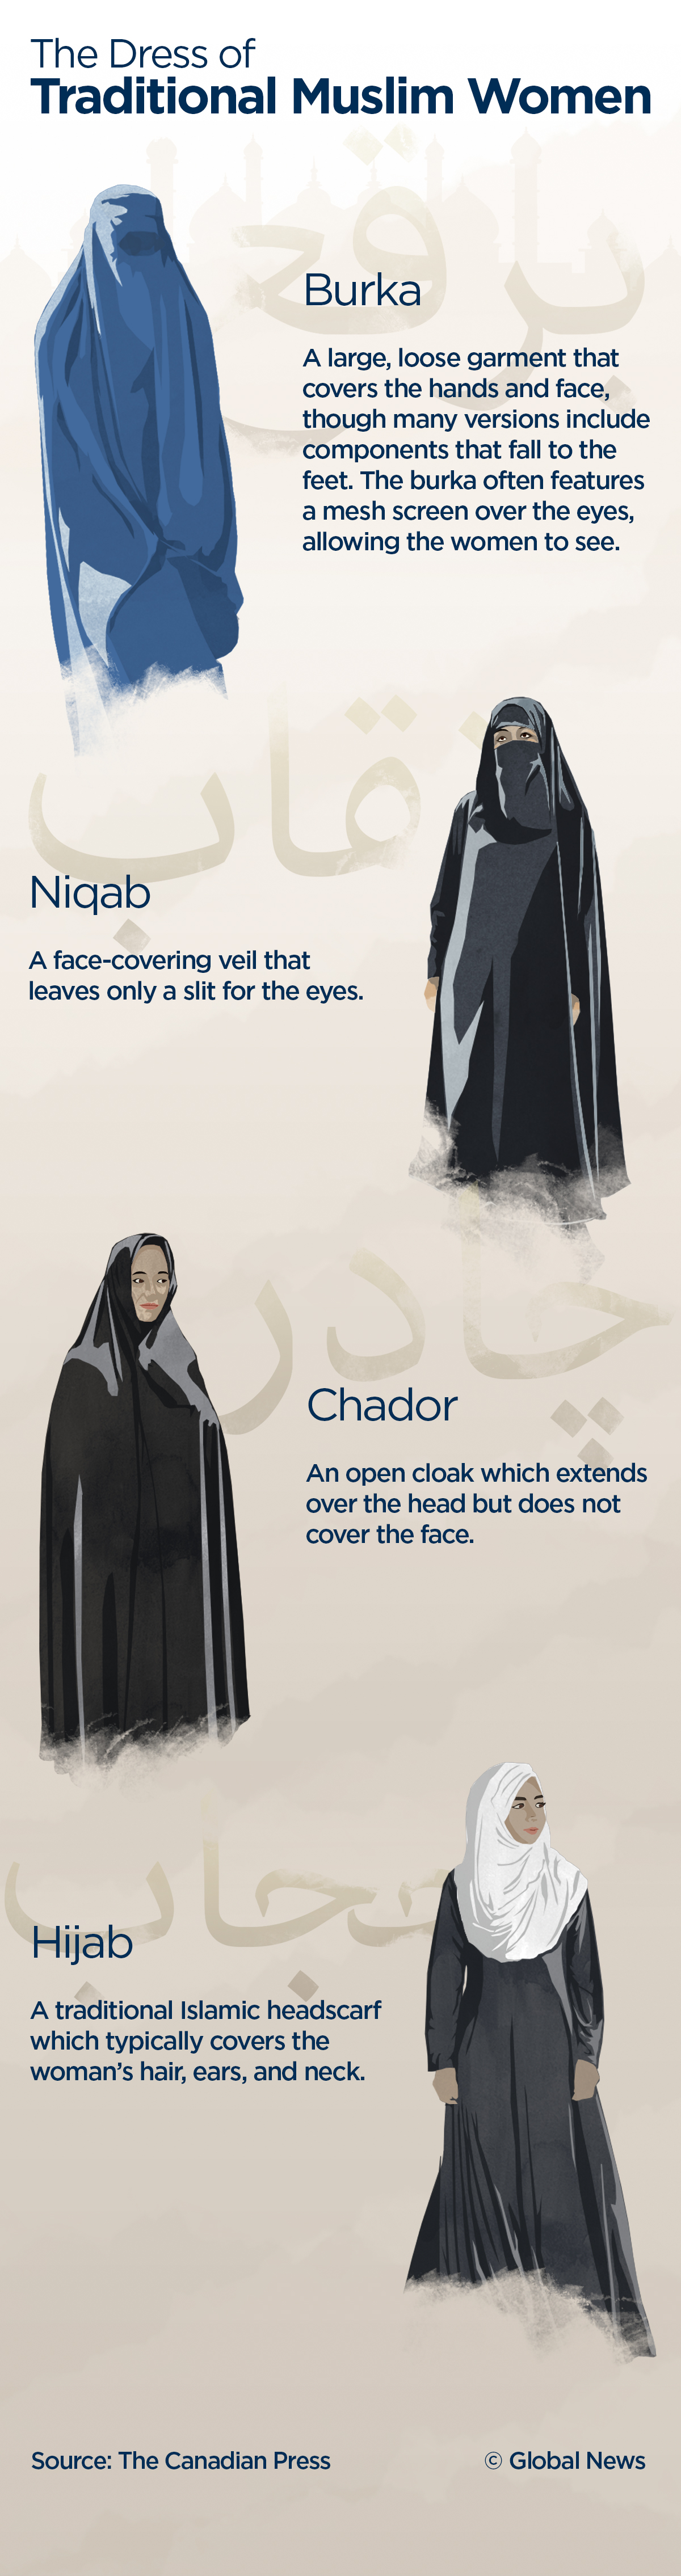 A look at different garments warn by some Muslim women.